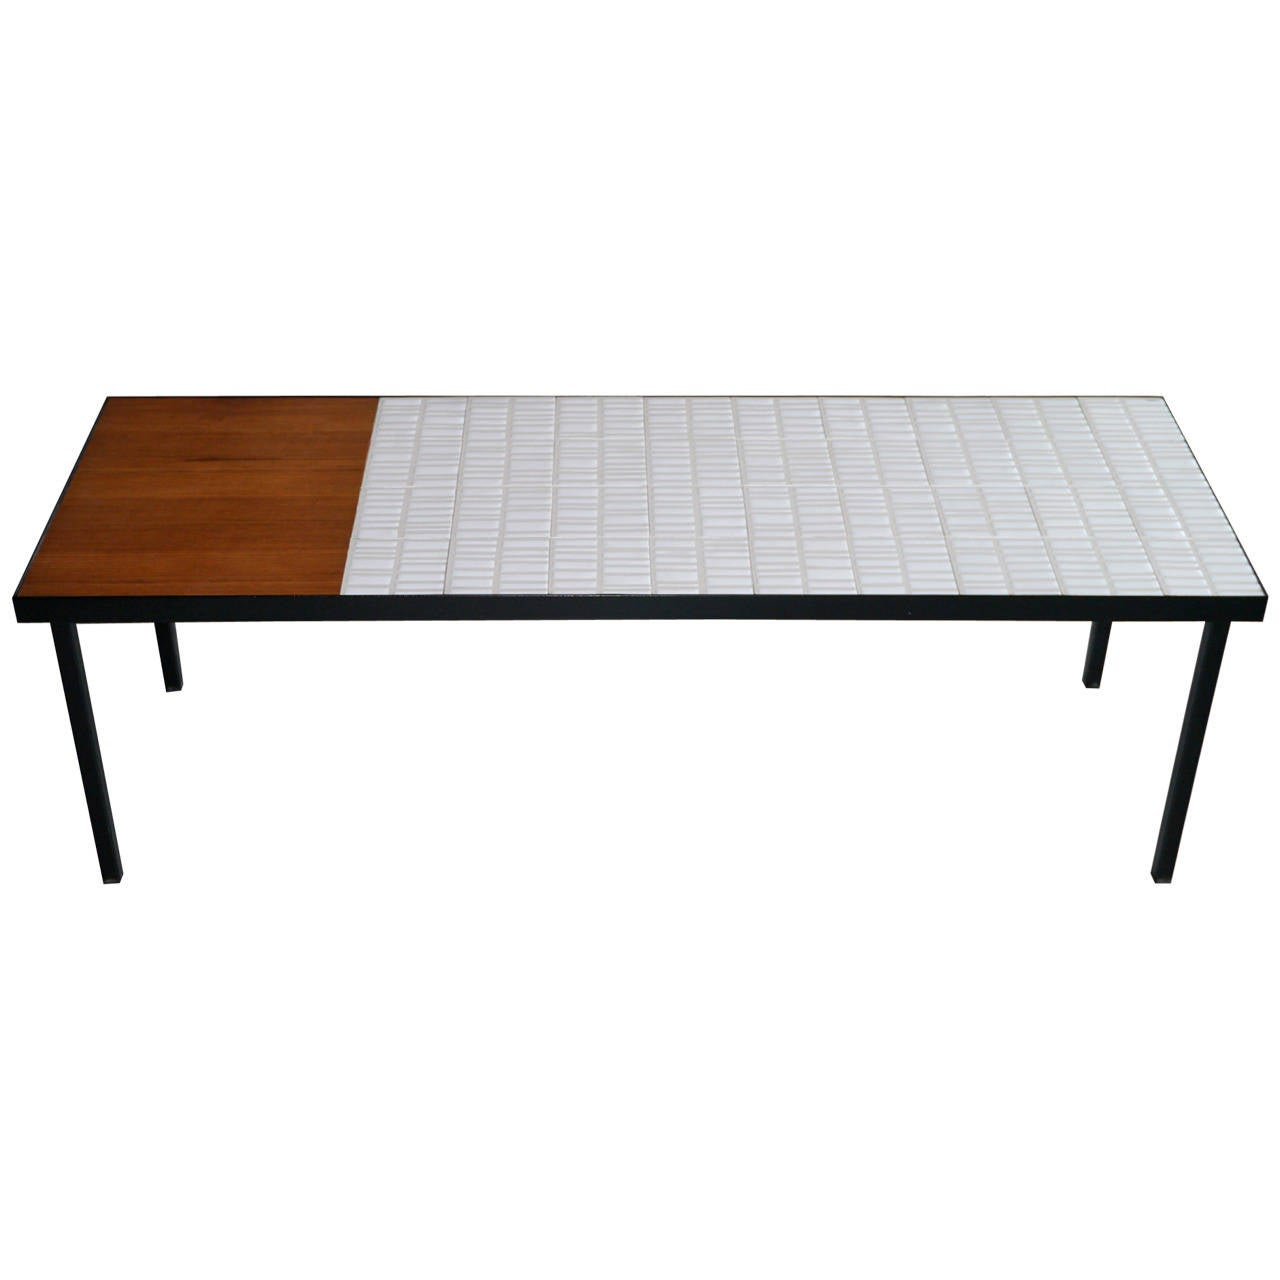 Iconic low table by roger capron circa 1950 at 1stdibs for Iconic tables